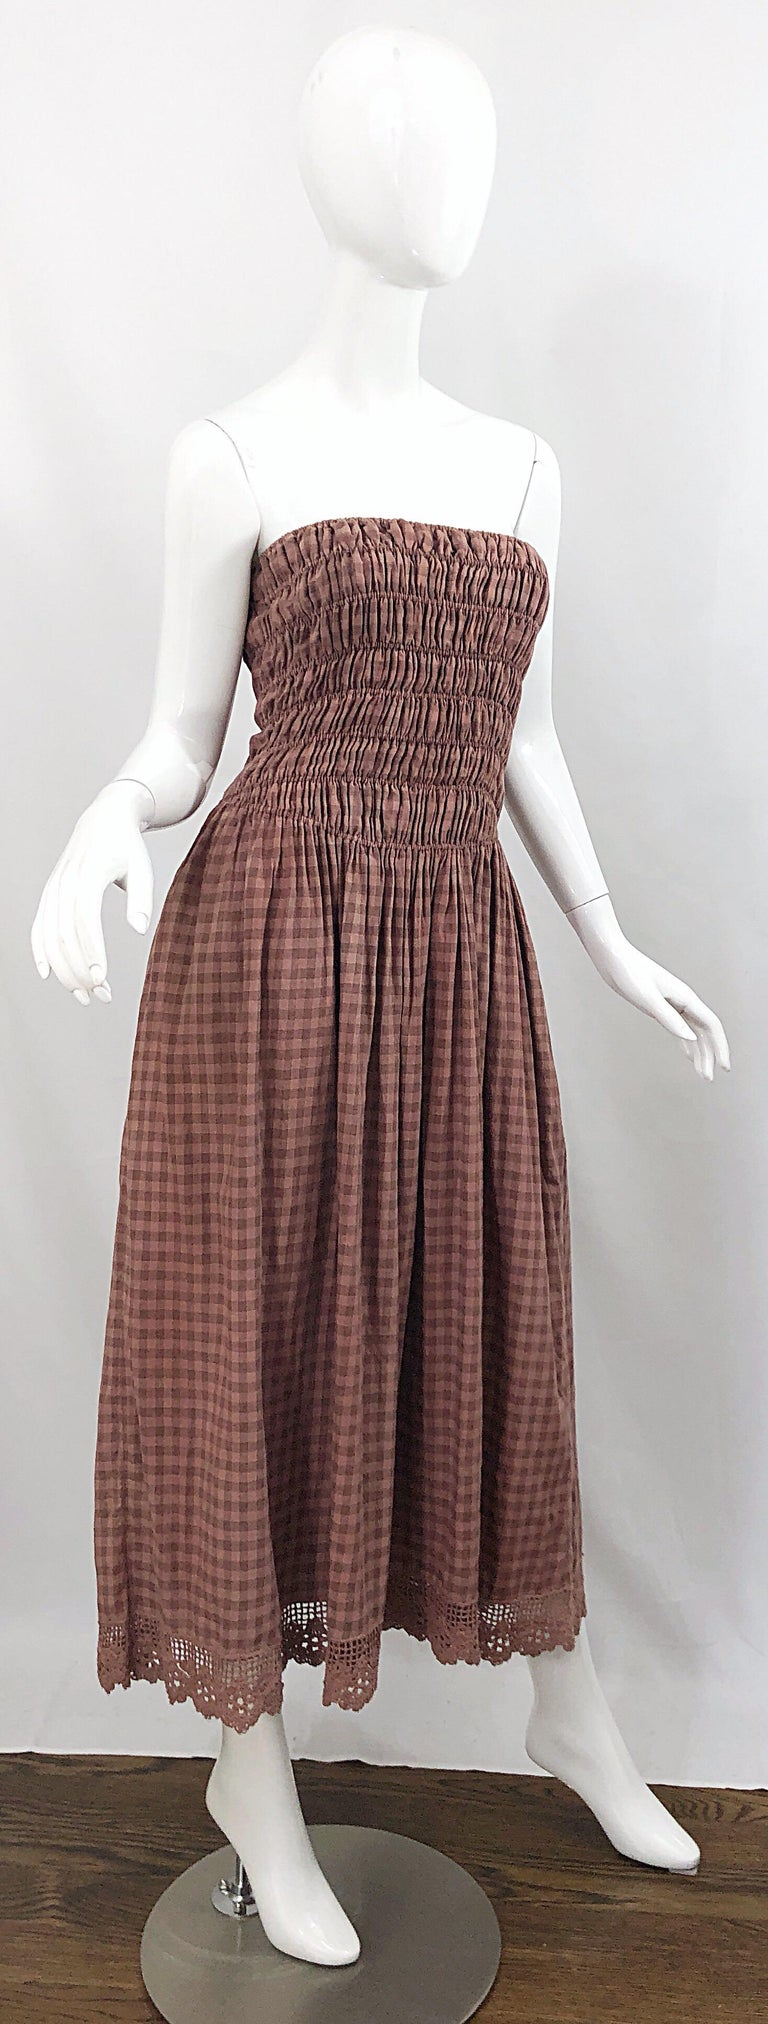 1970s Geoffrey Beene Dusty Rose Pink + Brown Crochet Strapless Ombre Midi Dress For Sale 6